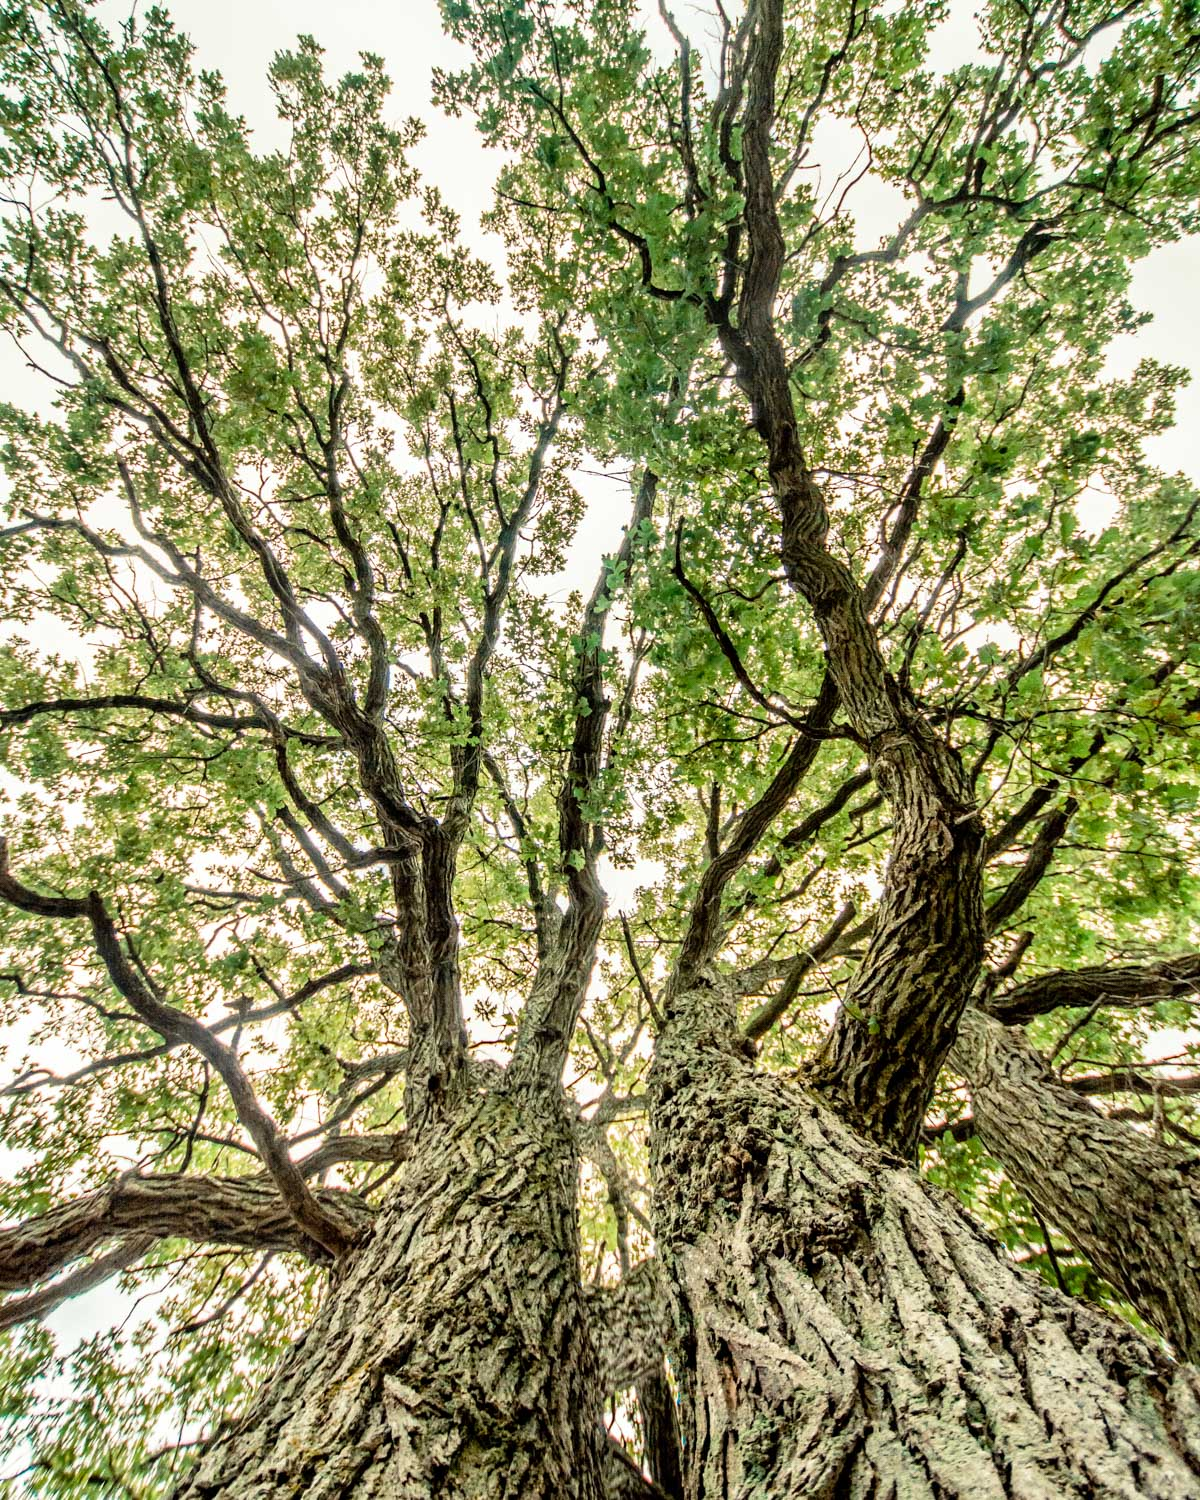 Low angle photo of a tree suggesting gesture.